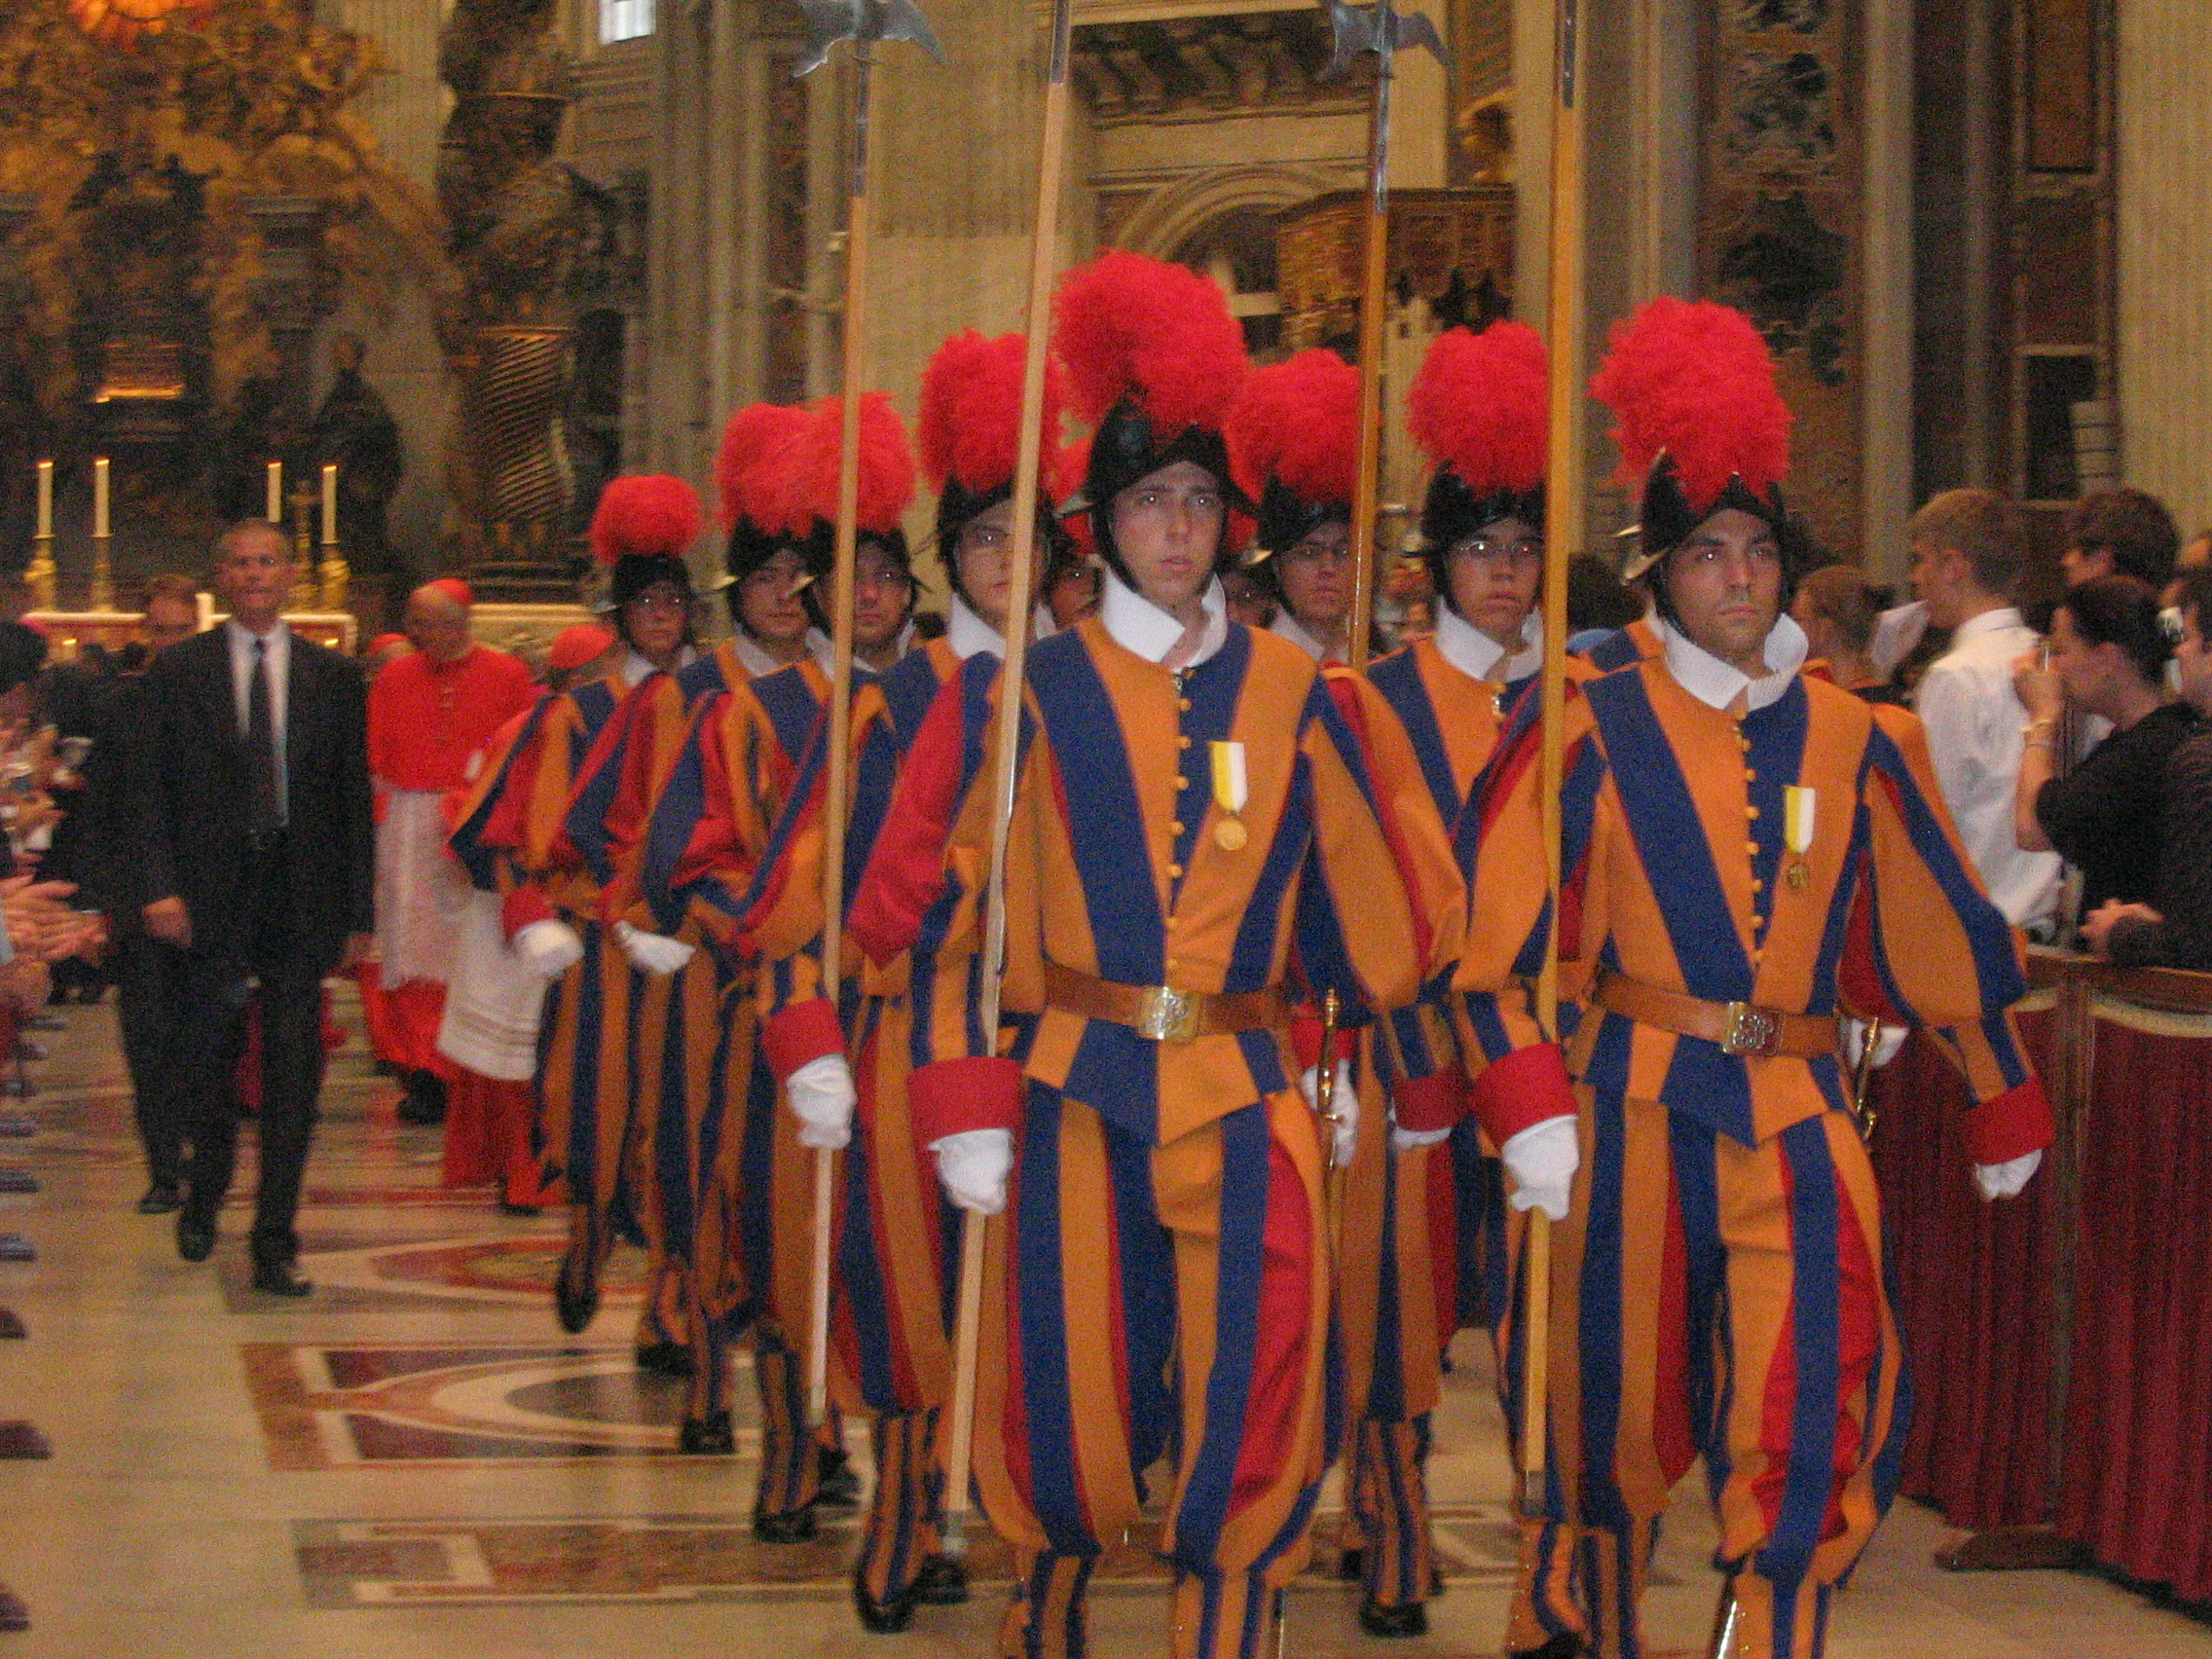 Swiss Guards inside St. Peter's Basilica, photographed in 2006 by Alberto Luccaroni